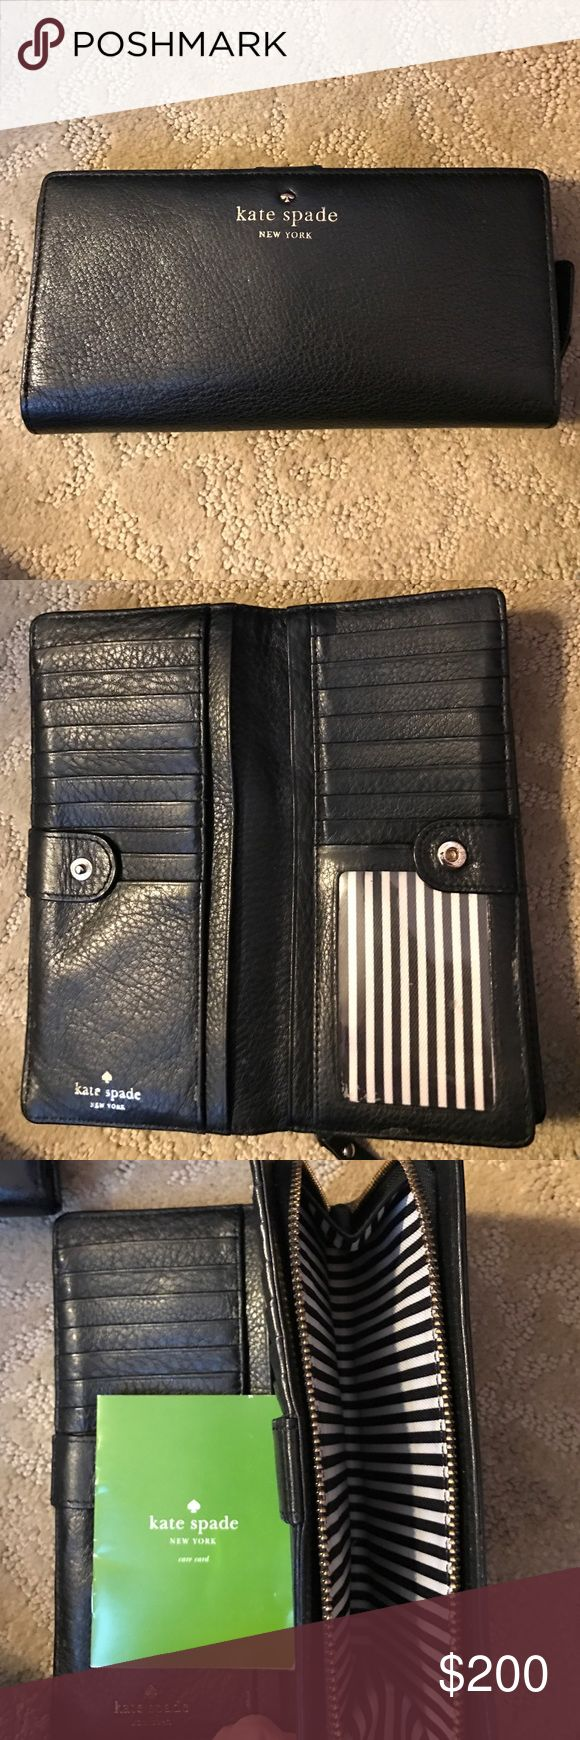 NWT KATE SPADE MARY JANE GOLD COAST WALLET Excellent condition Authentic Kate Spade  ♠️ wallet. Has 18 credit card slots three Bill compartments and zipper change purse. kate spade Bags Wallets